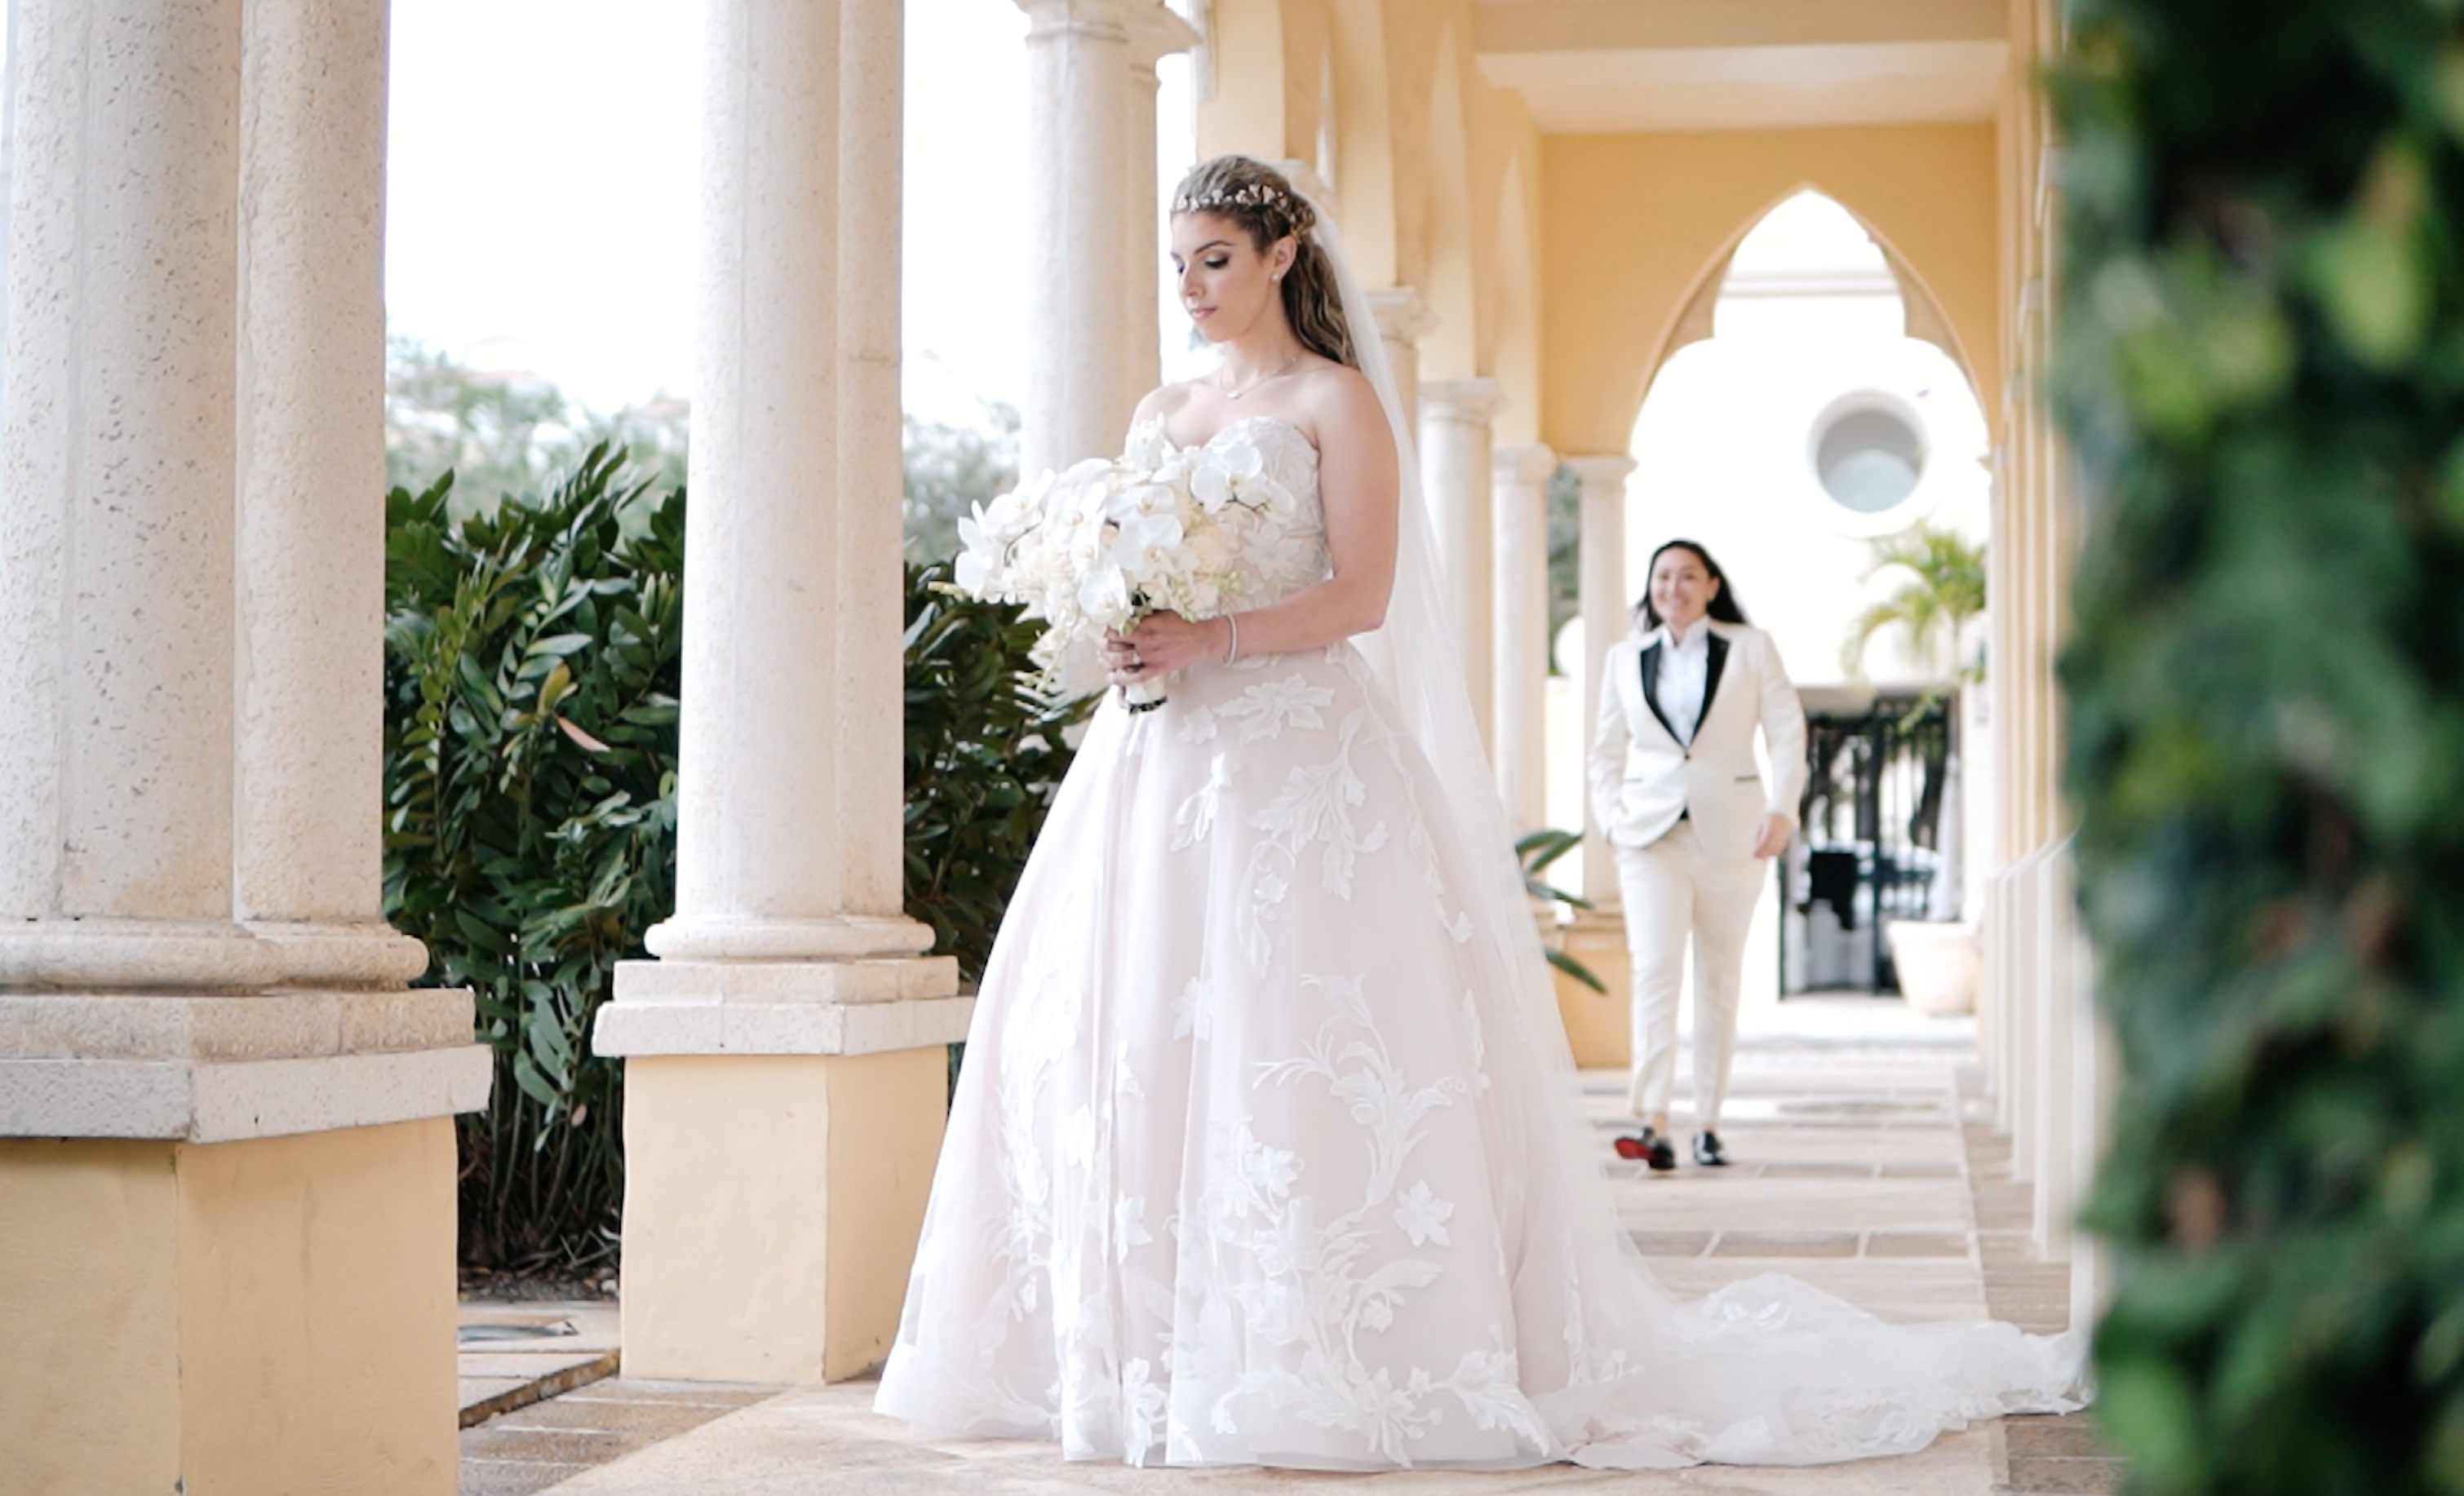 Danielle + Rae | Boca Raton, Florida | The Addison